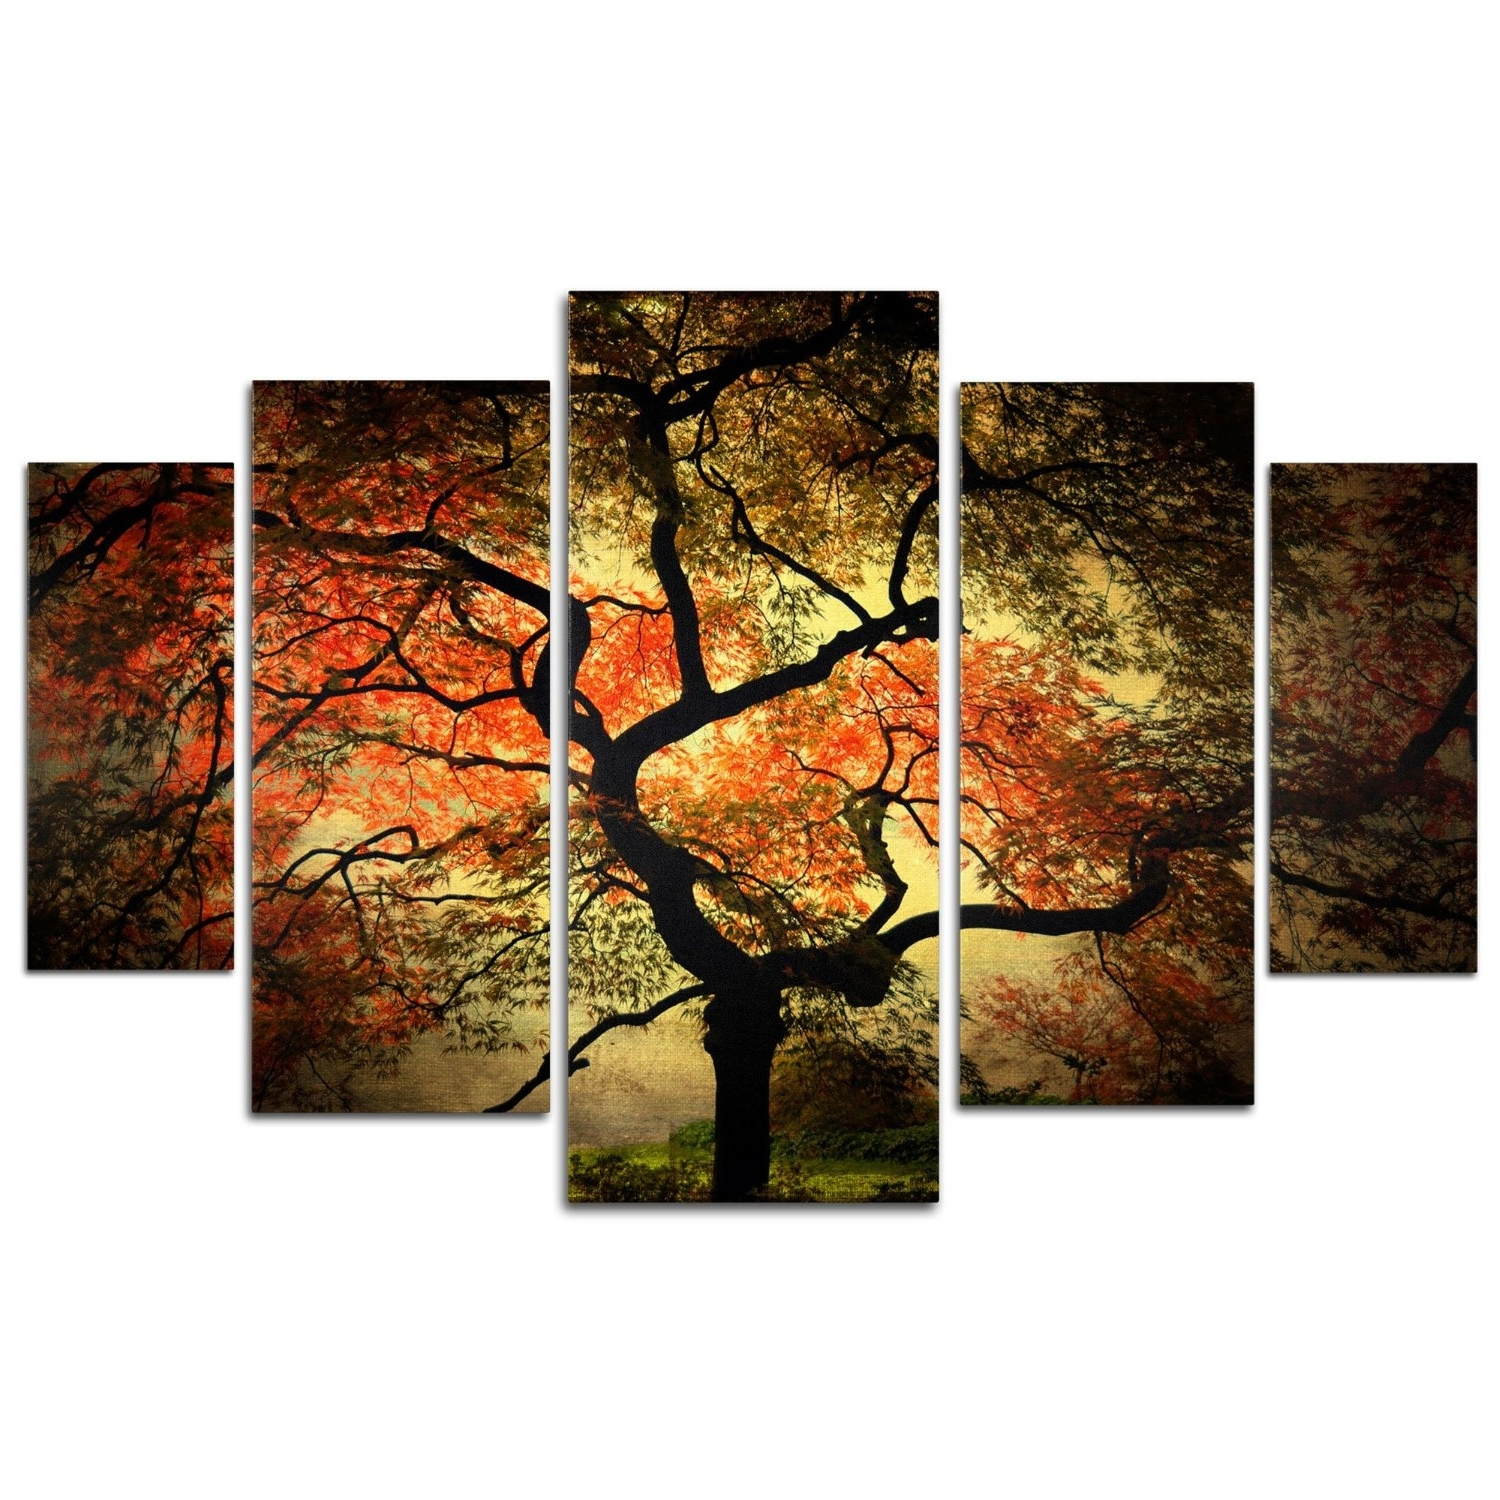 Wall Art Designs: Multi Panel Wall Art Pair Large Multi Panel Within Trendy Three Panel Wall Art (View 13 of 15)